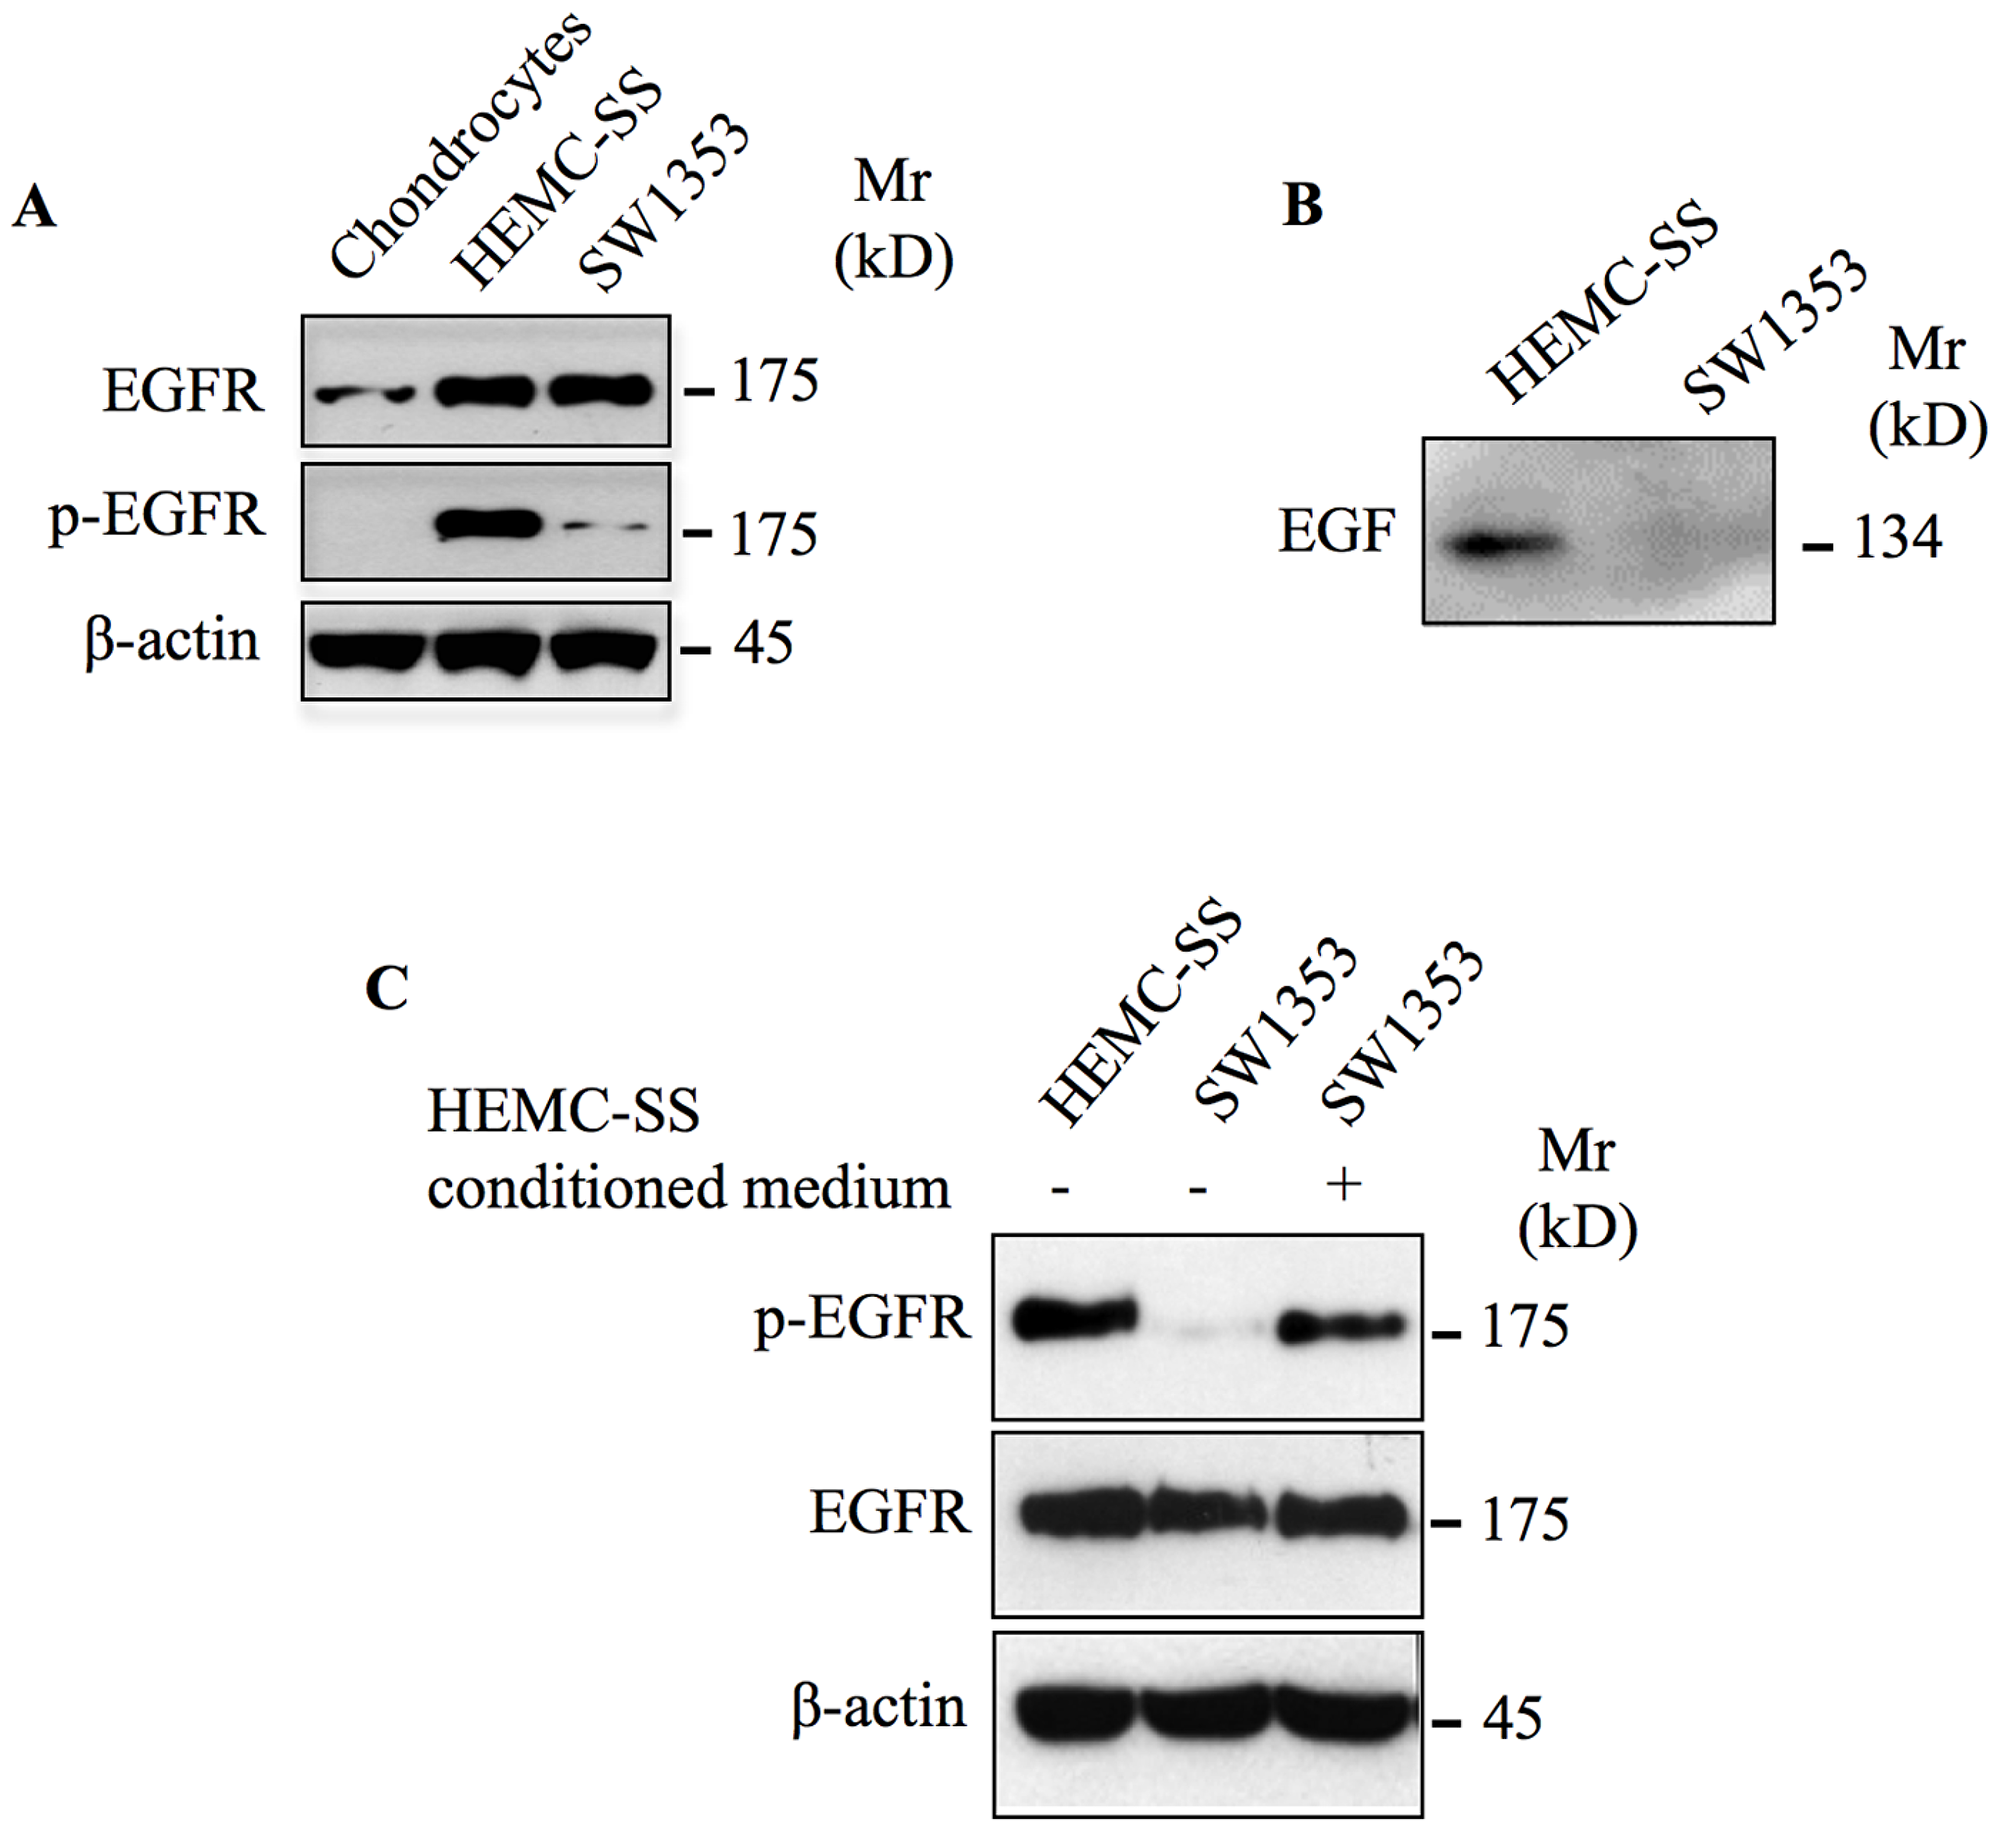 EGFR is overexpressed and constitutively activated in chondrosarcoma cells.